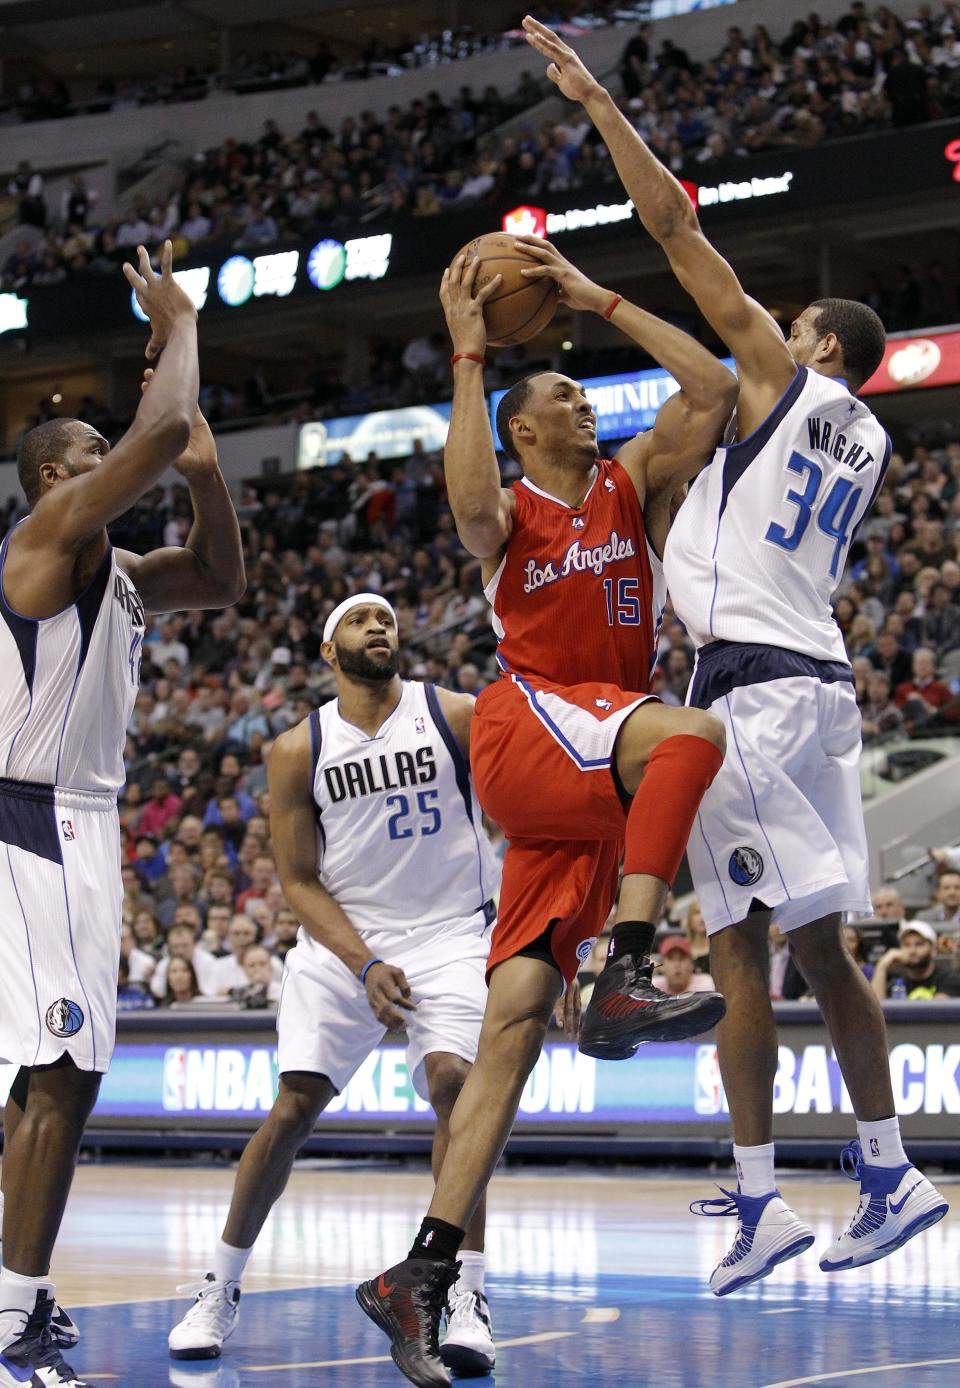 Los Angeles Clippers forward Ryan Hollins (15) looks for room against Dallas Mavericks forwards Brandan Wright (34) and Elton Brand, left,and guard Vince Carter (25) during the first half of an NBA basketball game, Tuesday, March 26, 2013, in Dallas. (AP Photo/Brandon Wade)